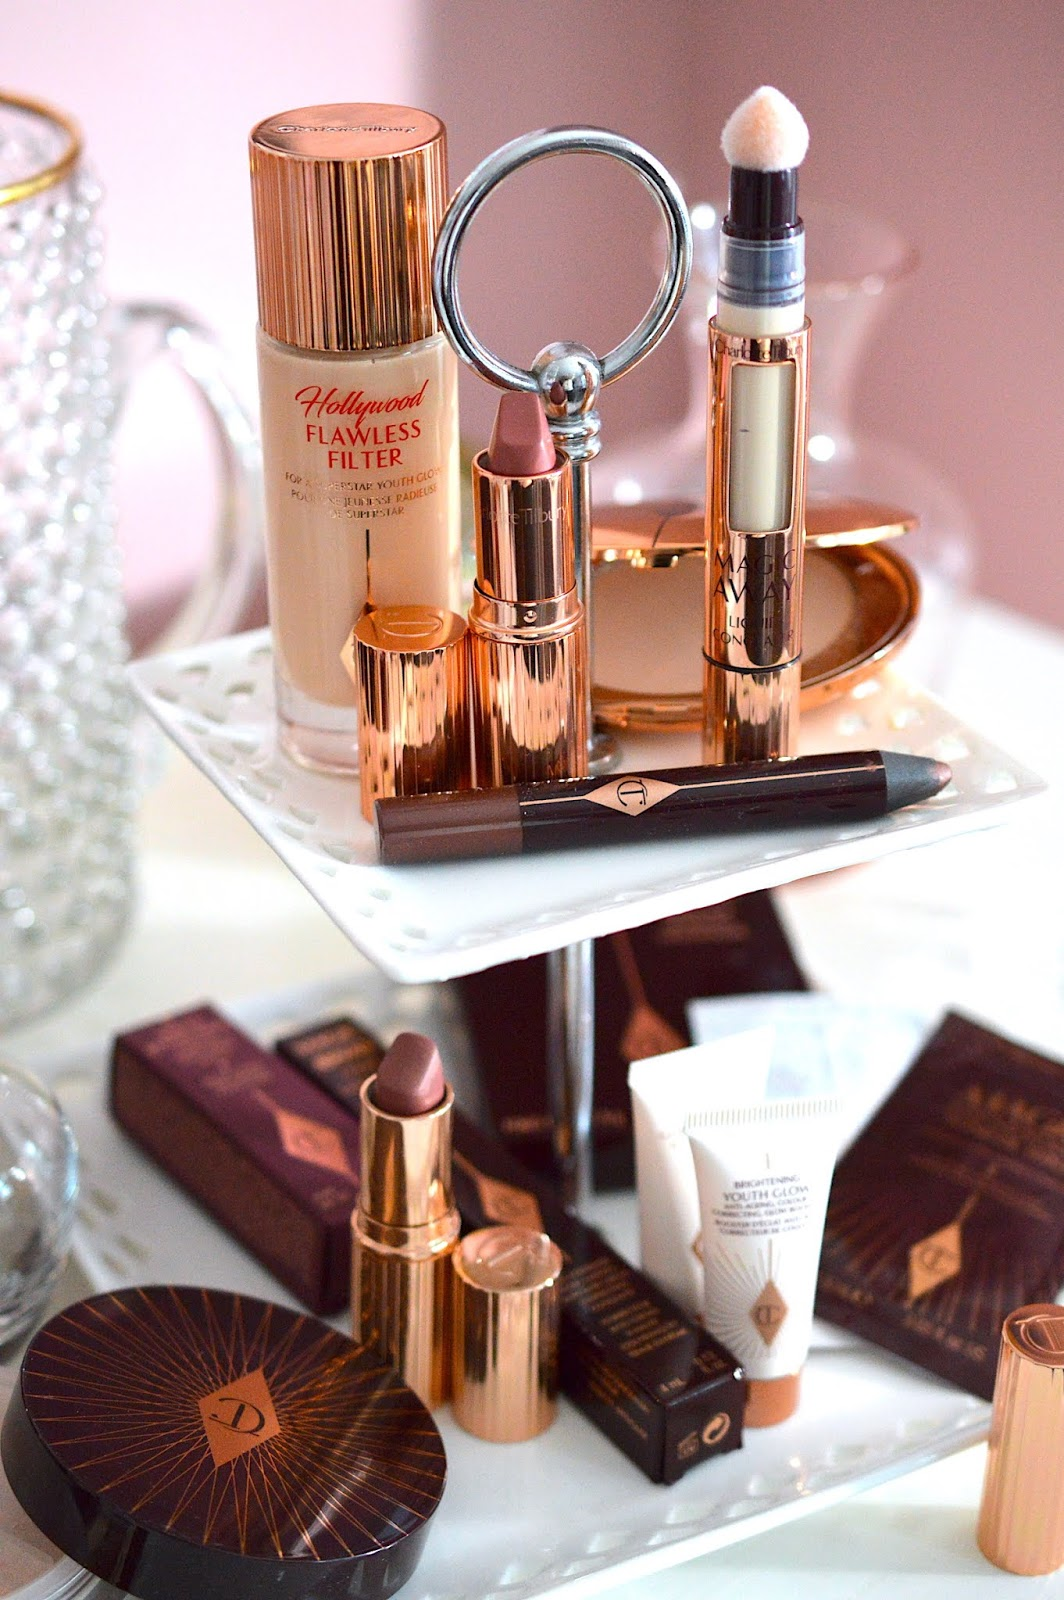 Charlotte Tilbury Set Review